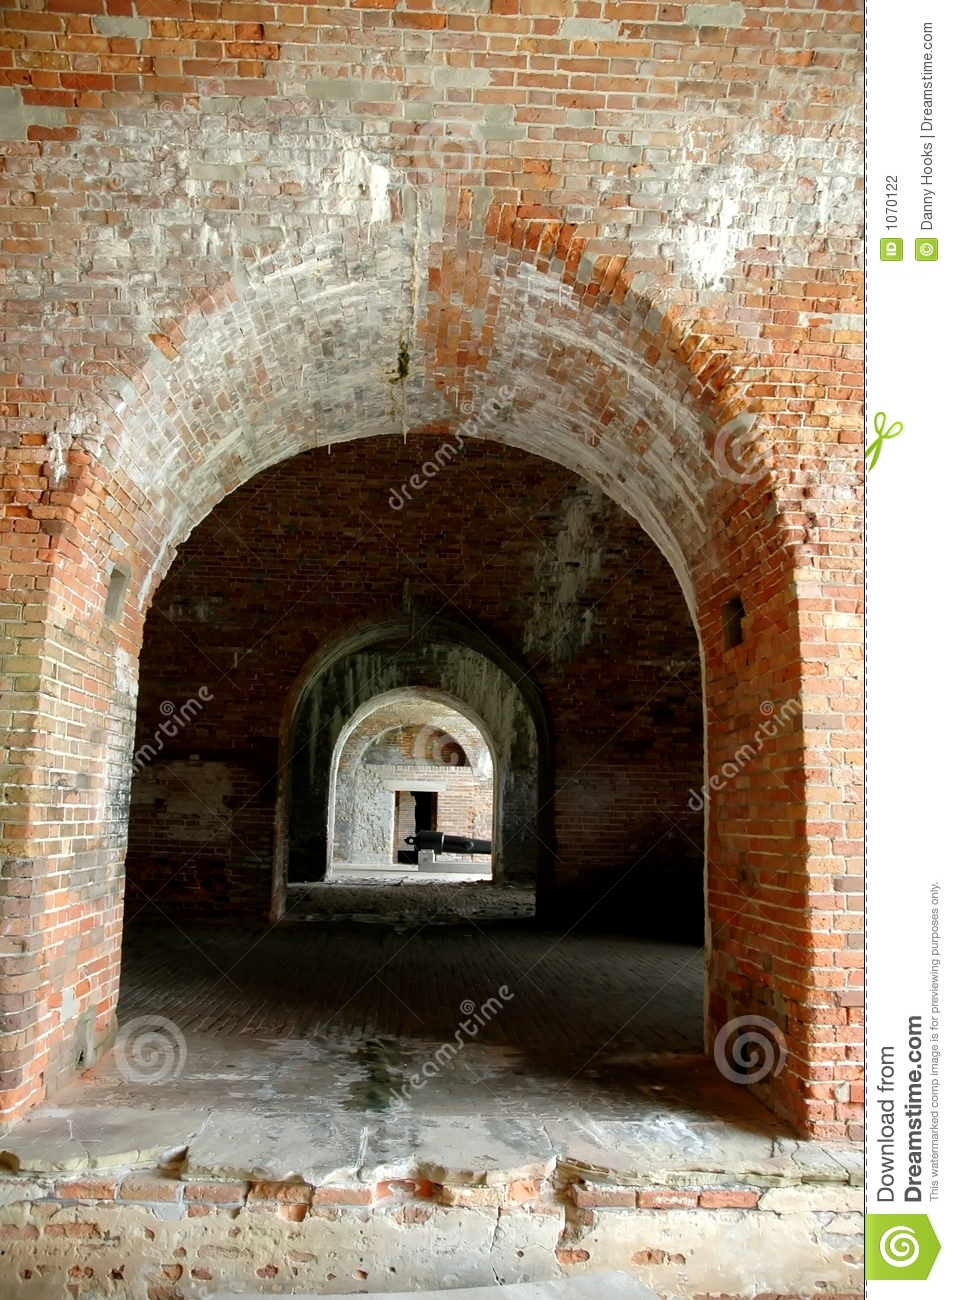 Archways at Fort Morgan